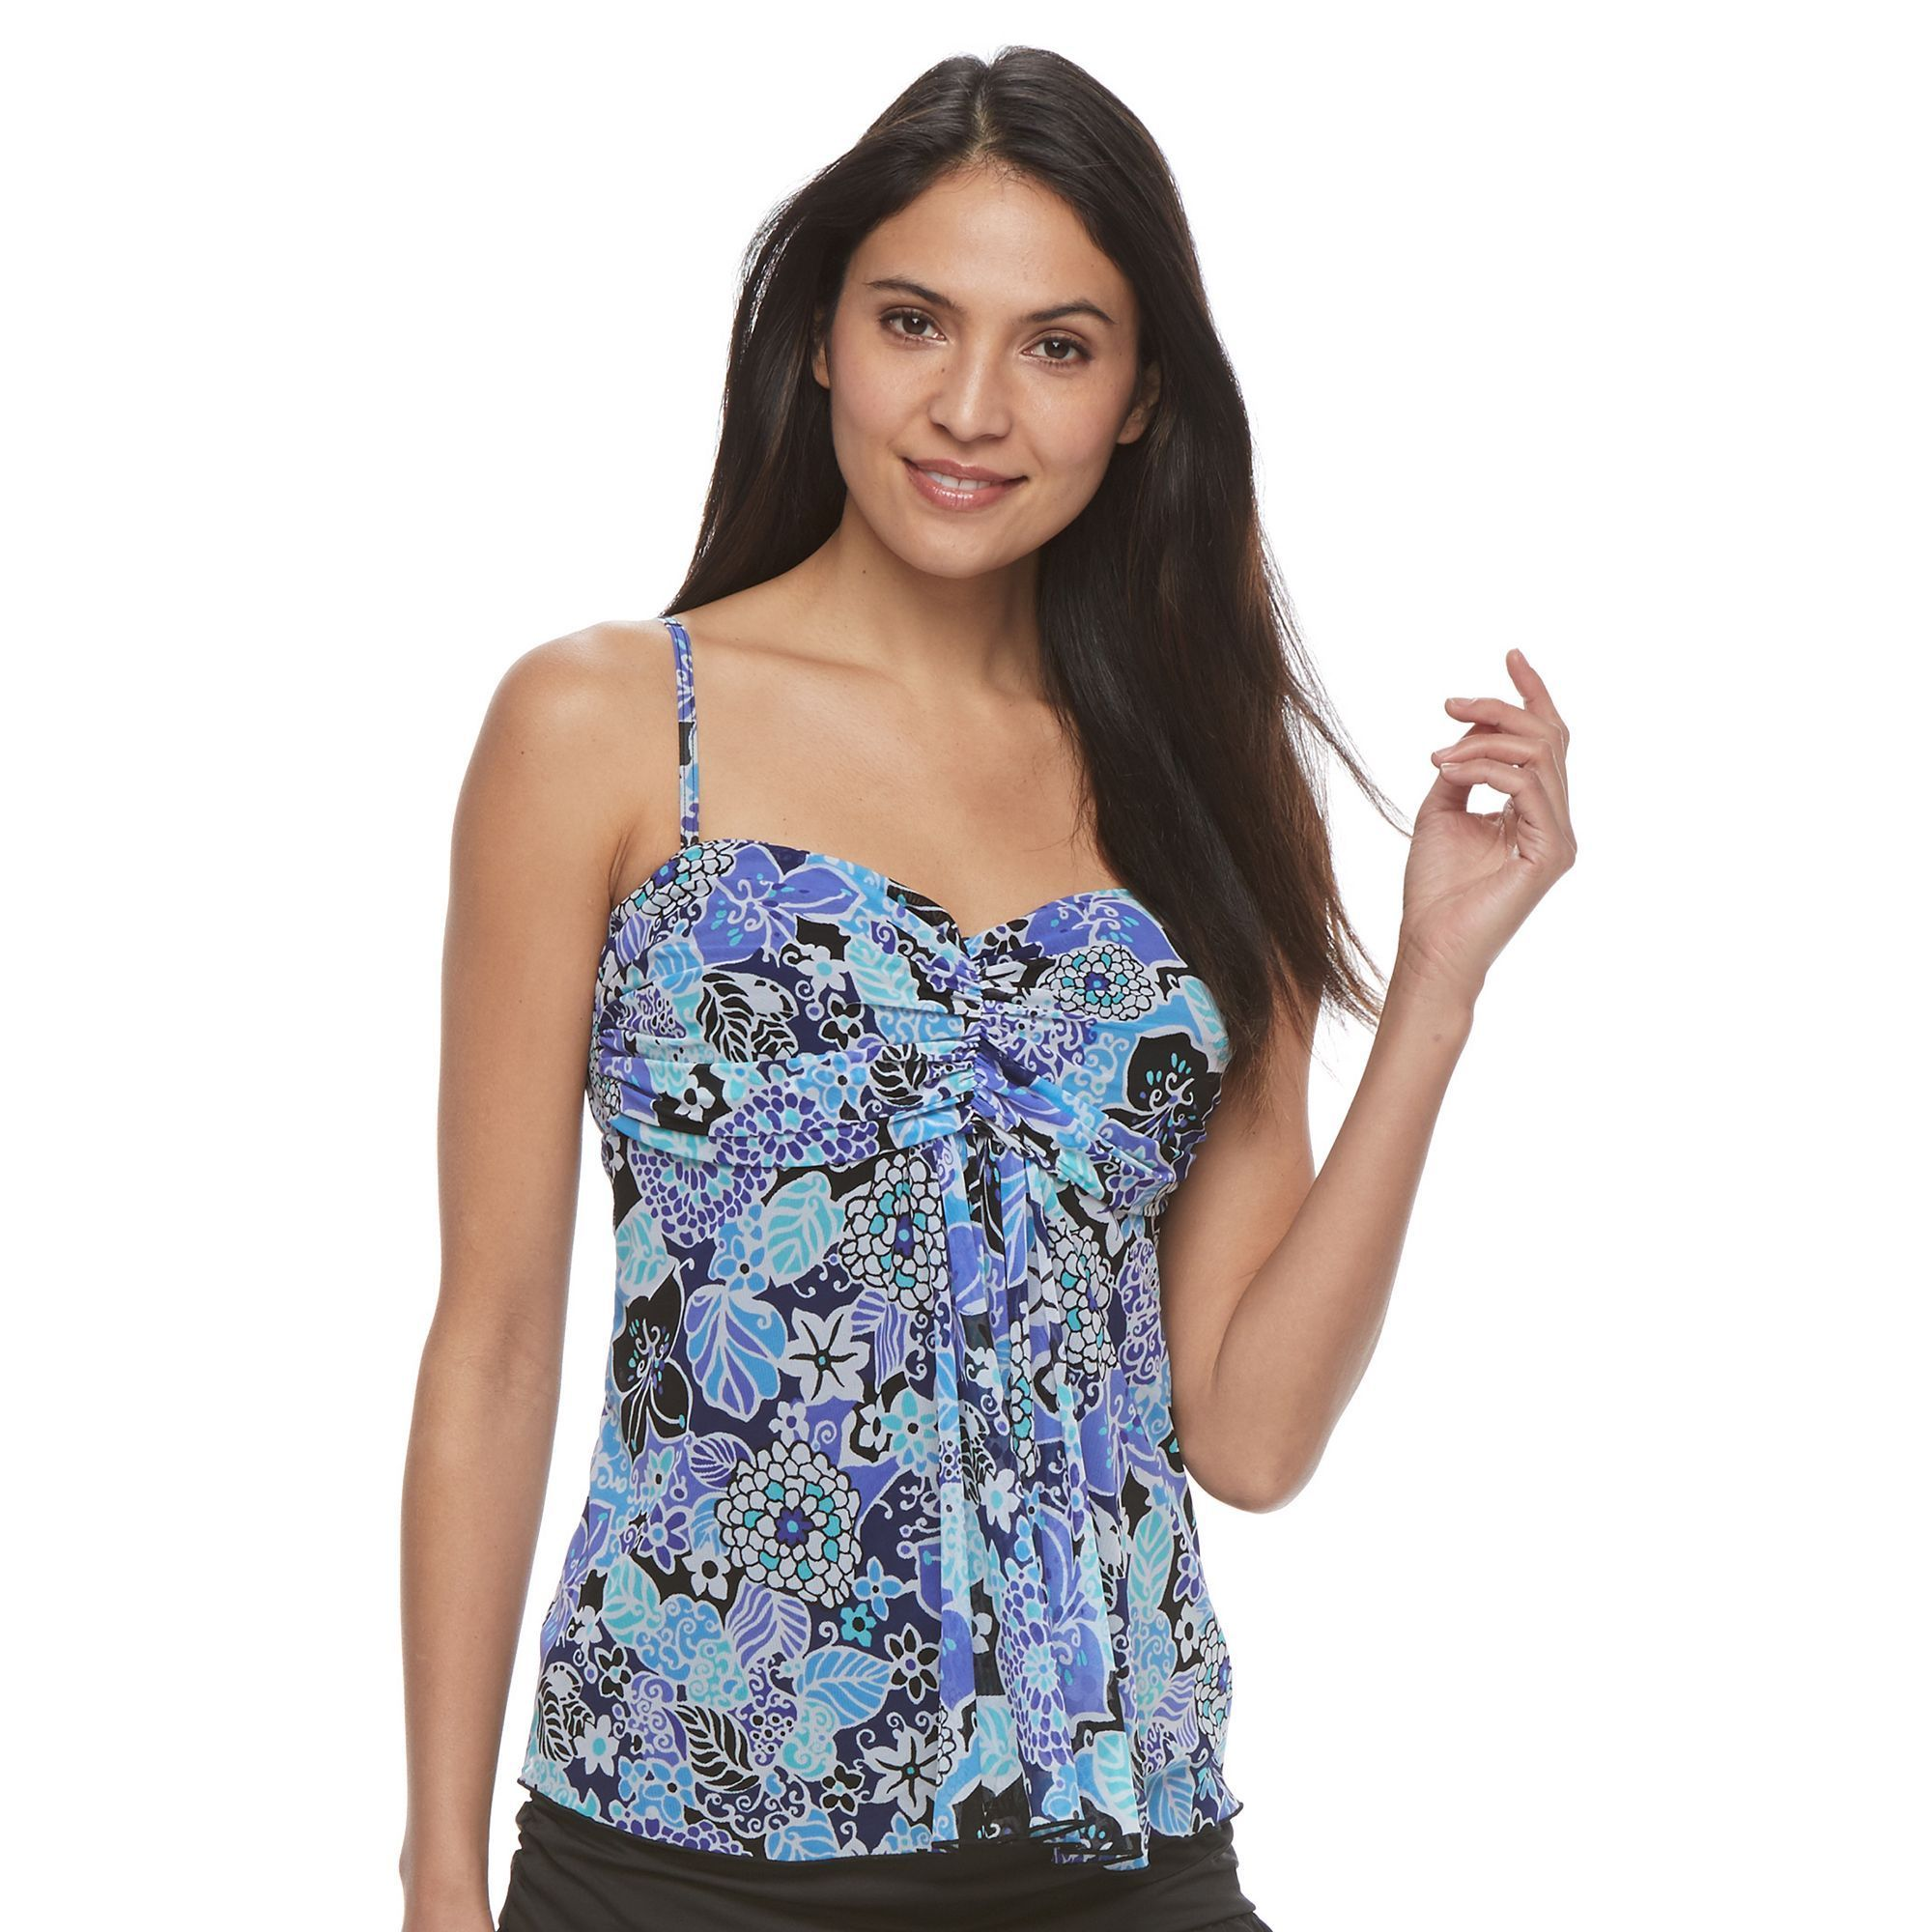 big sale online cheap outlet store Women's A Shore Fit Tummy ... Slimmer Mesh Tankini Top browse cheap price footlocker for sale t47dqXfo